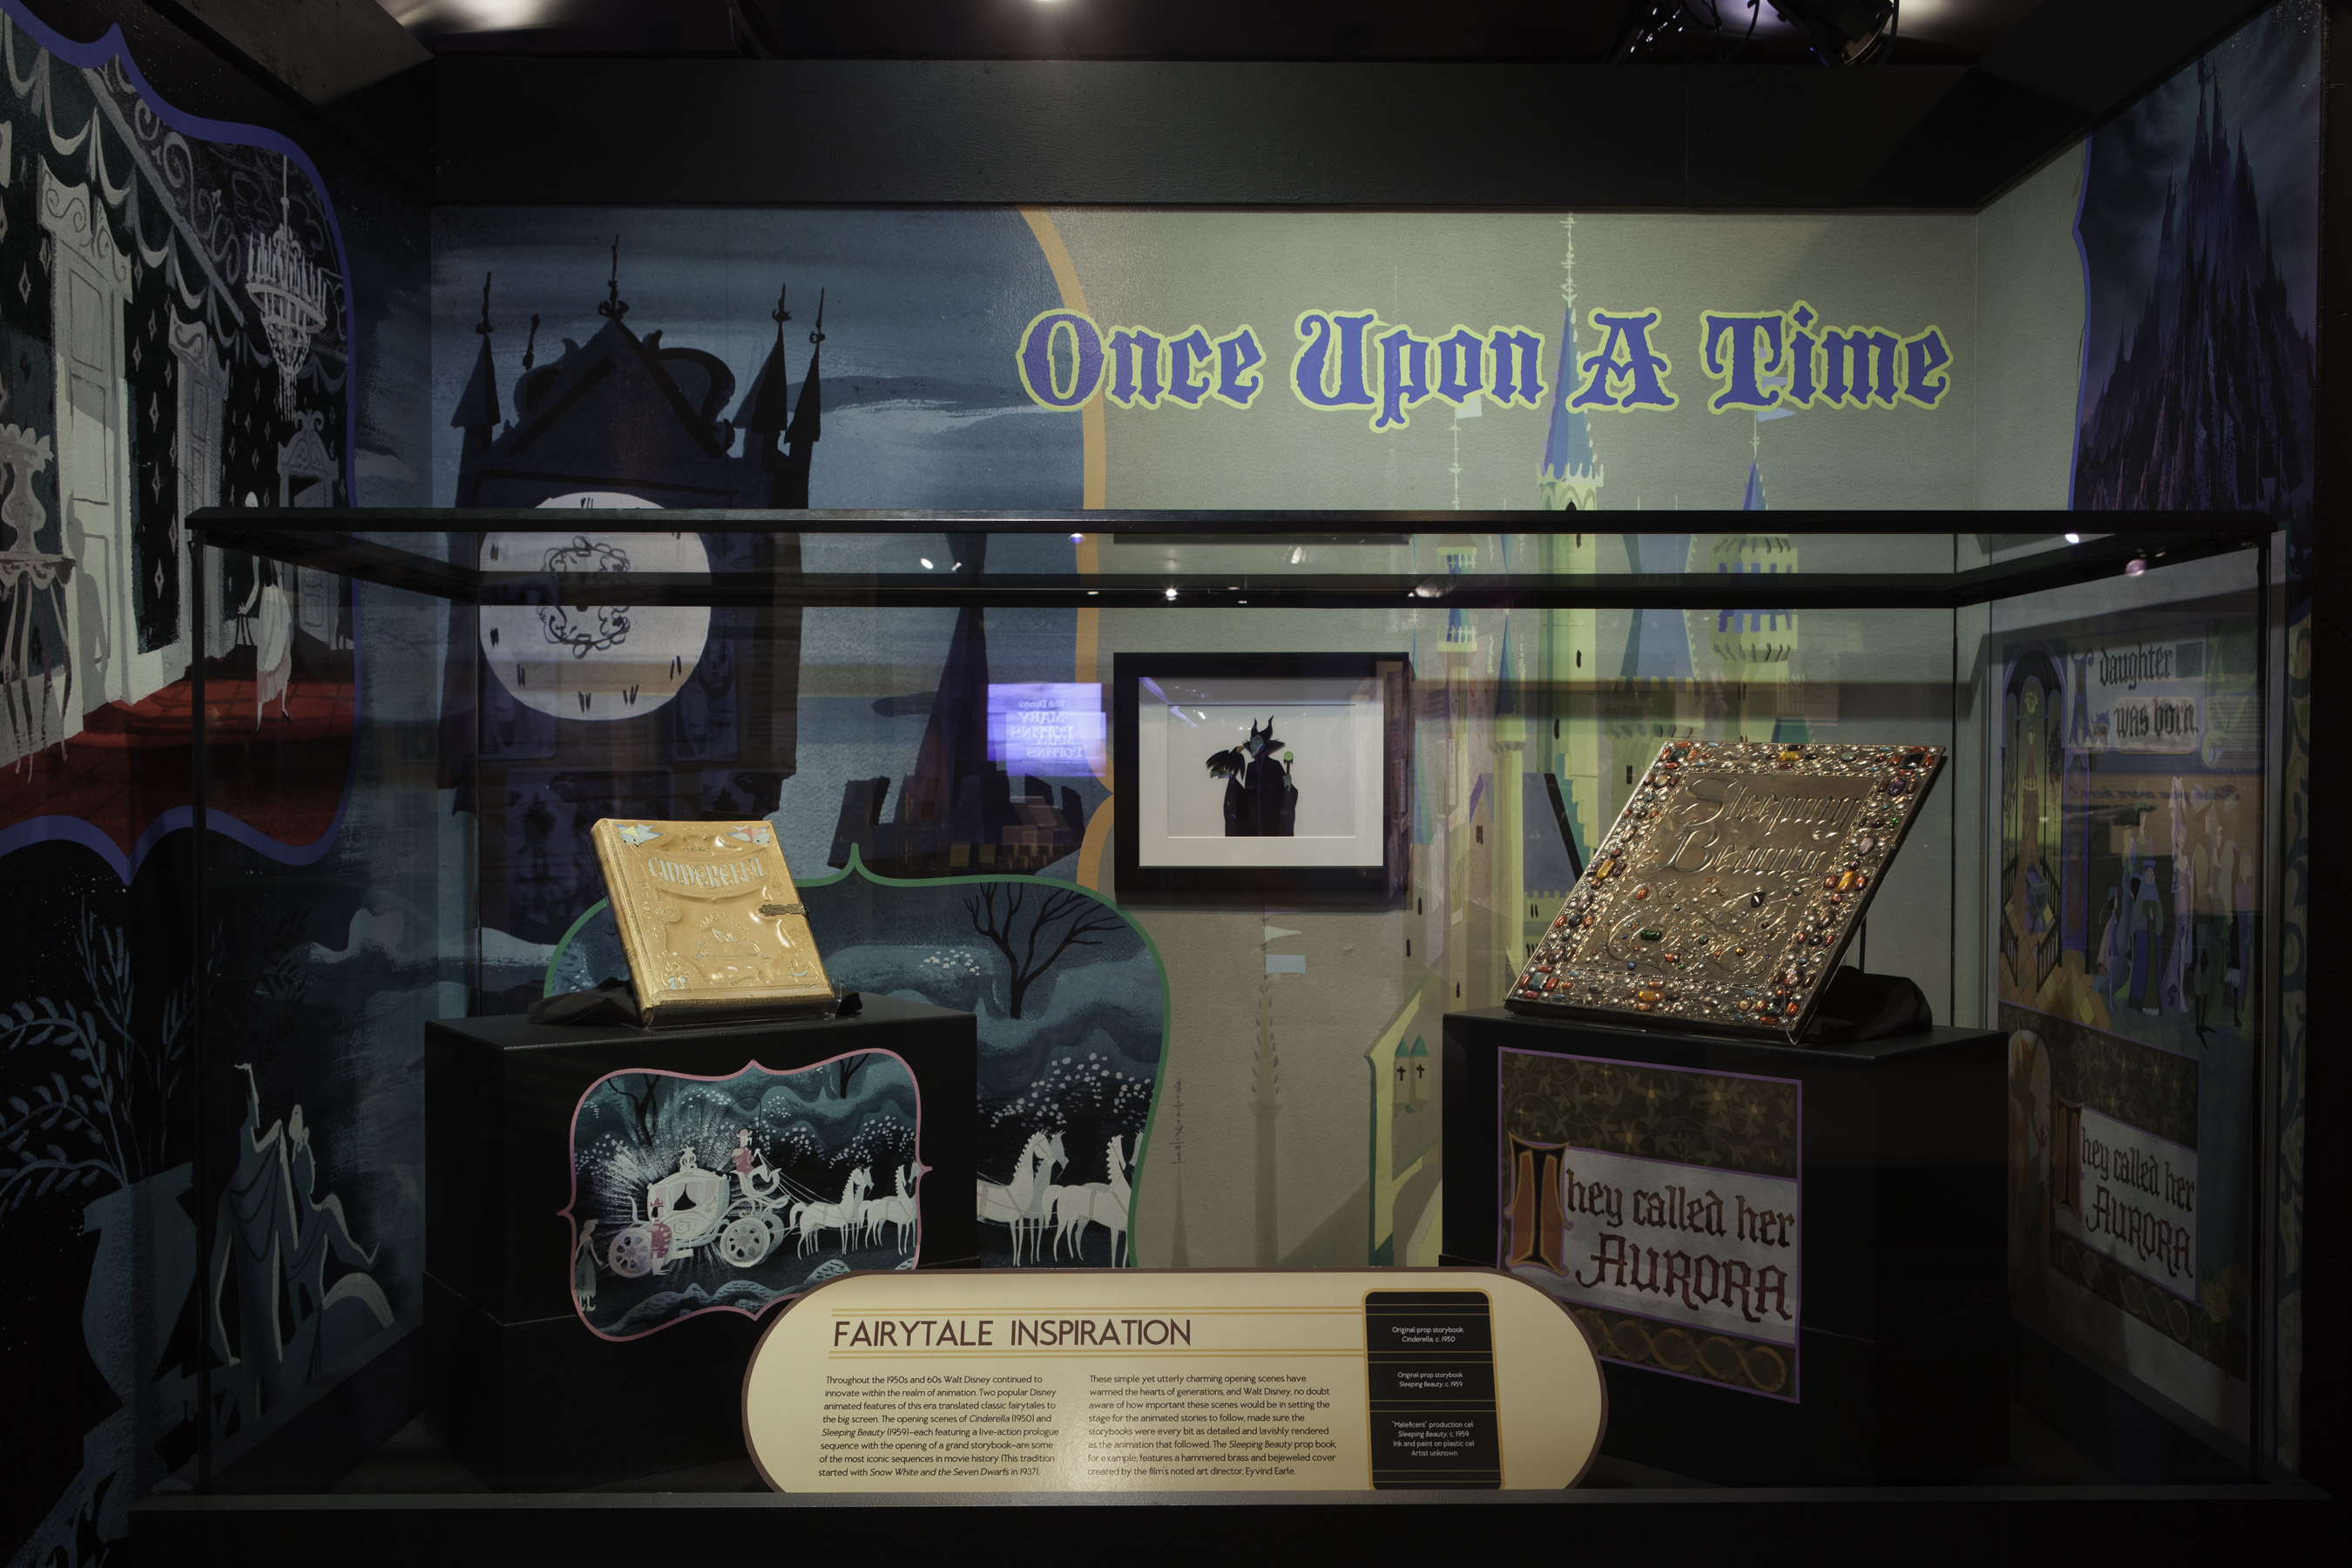 Once Upon a Time: Prop storybooks used in the opening scenes of Disney animation classics Cinderella and Sleeping Beauty. [J.B. Spector, Museum of Science and Industry]